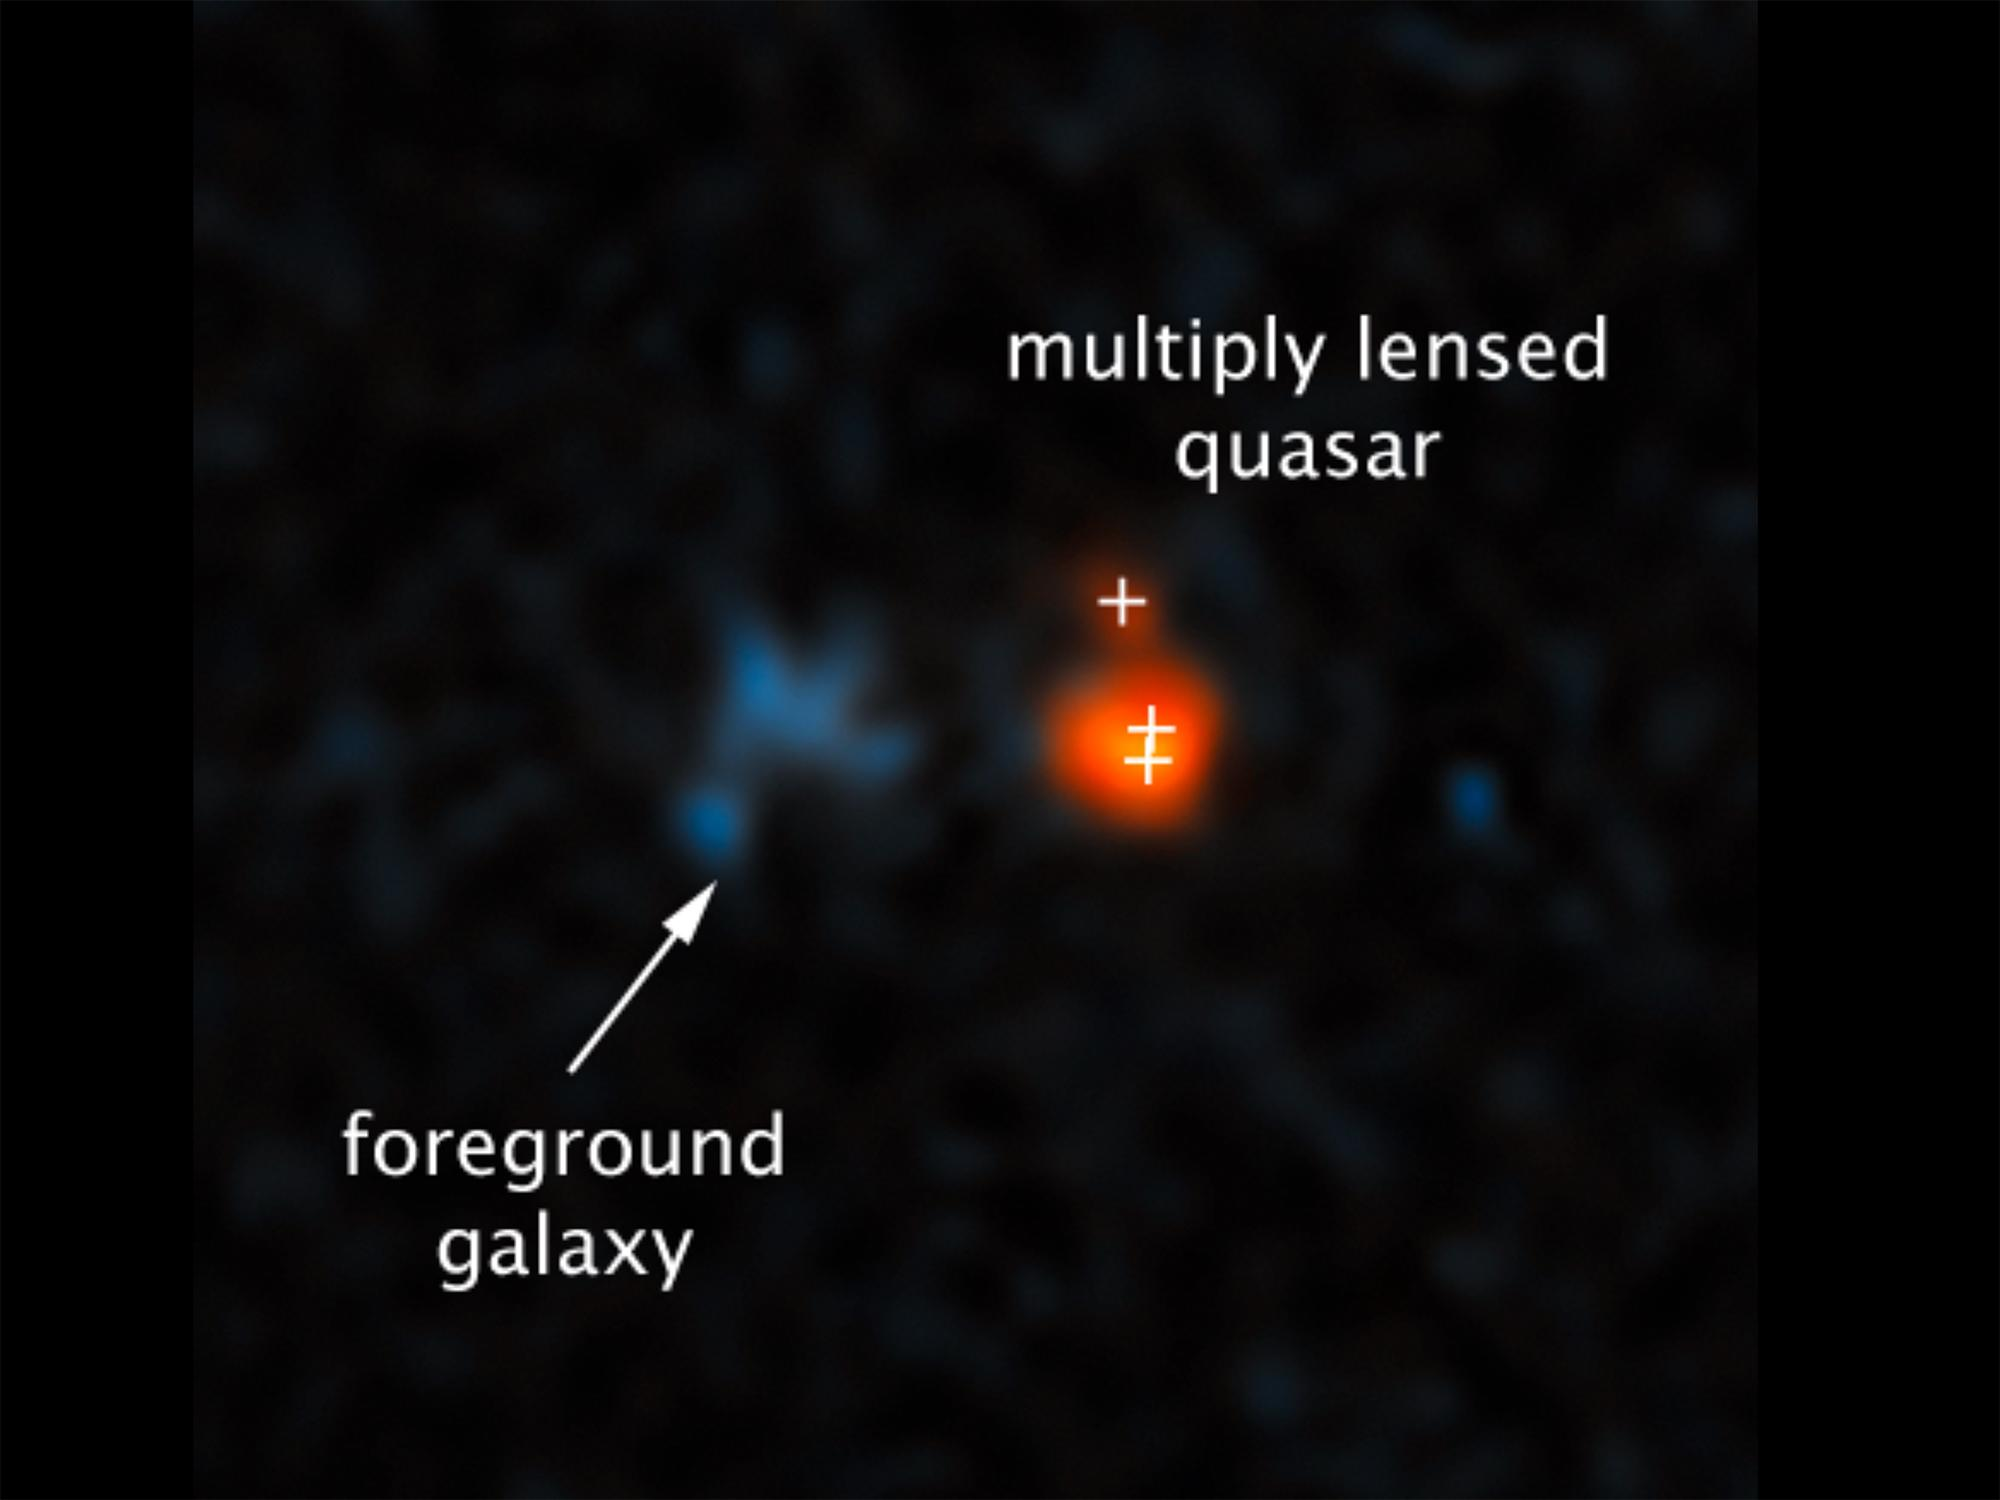 A Hubble Space Telescope image of a very distant quasar  that has been brightened and split into three images by the effects of the gravitational field of a foreground galaxy .